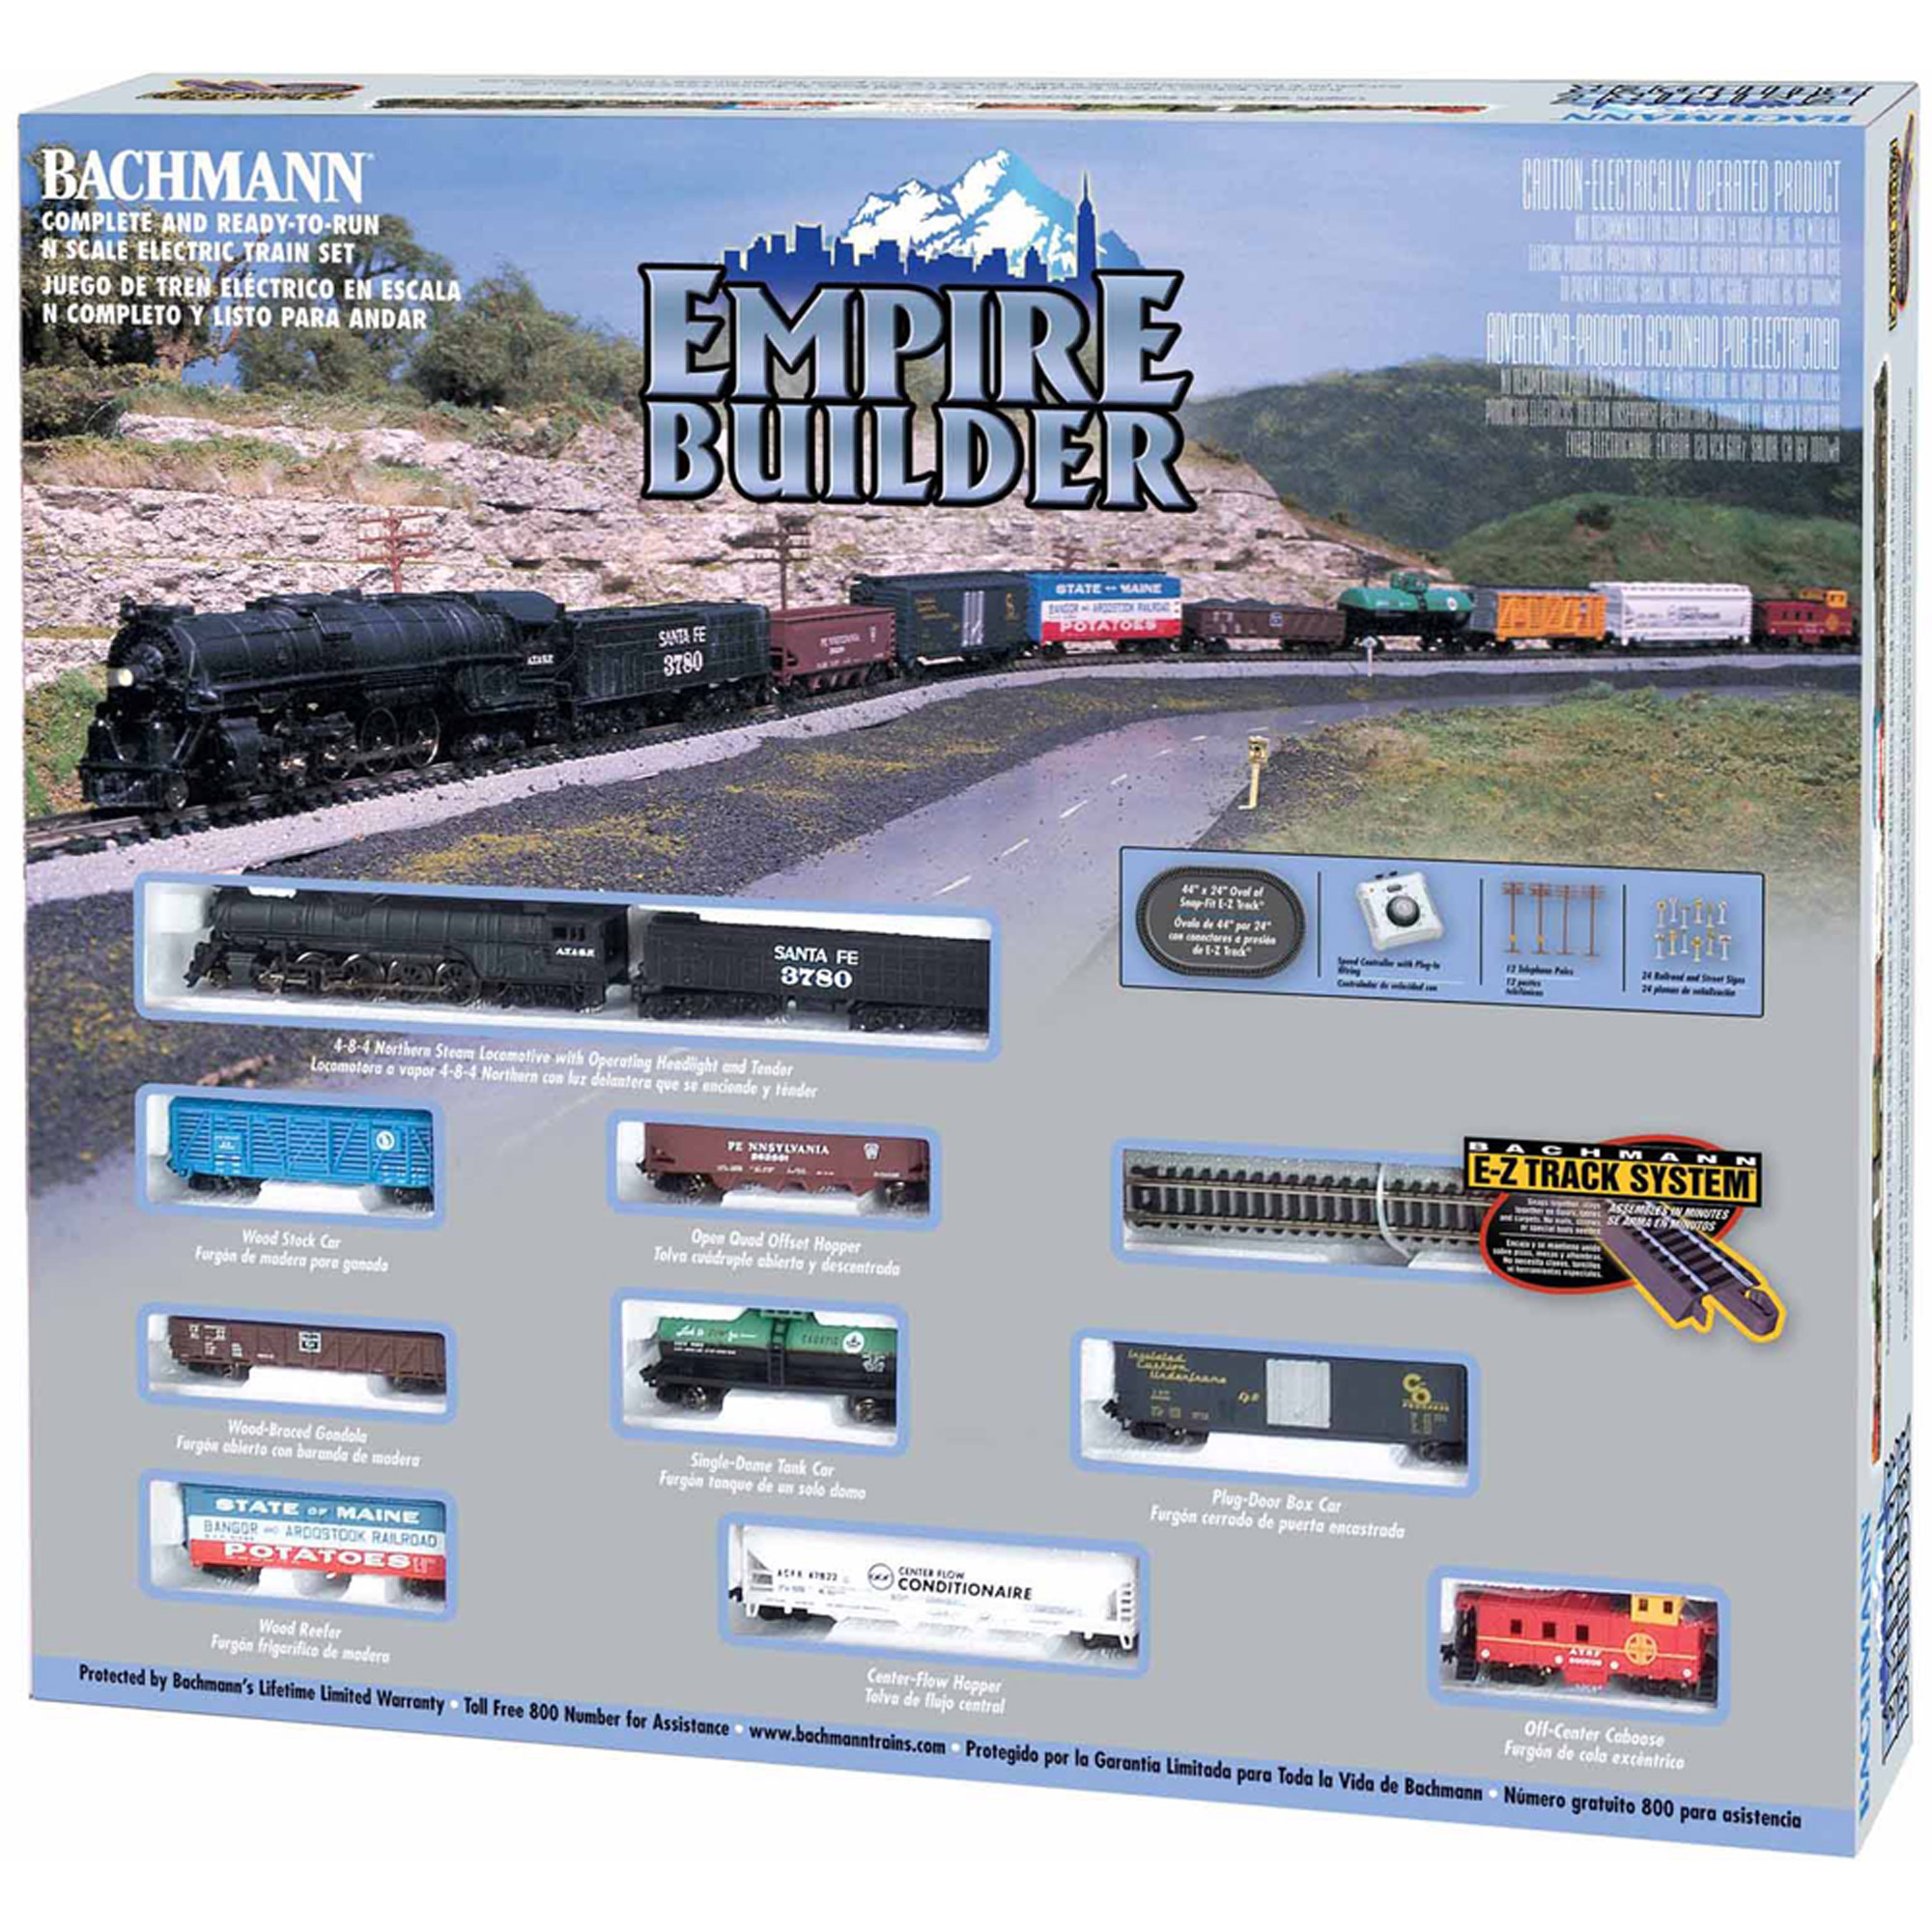 Bachmann Trains Empire Builder, N Scale Ready-to-Run Electric Train Set by Bachmann Industries, Inc.